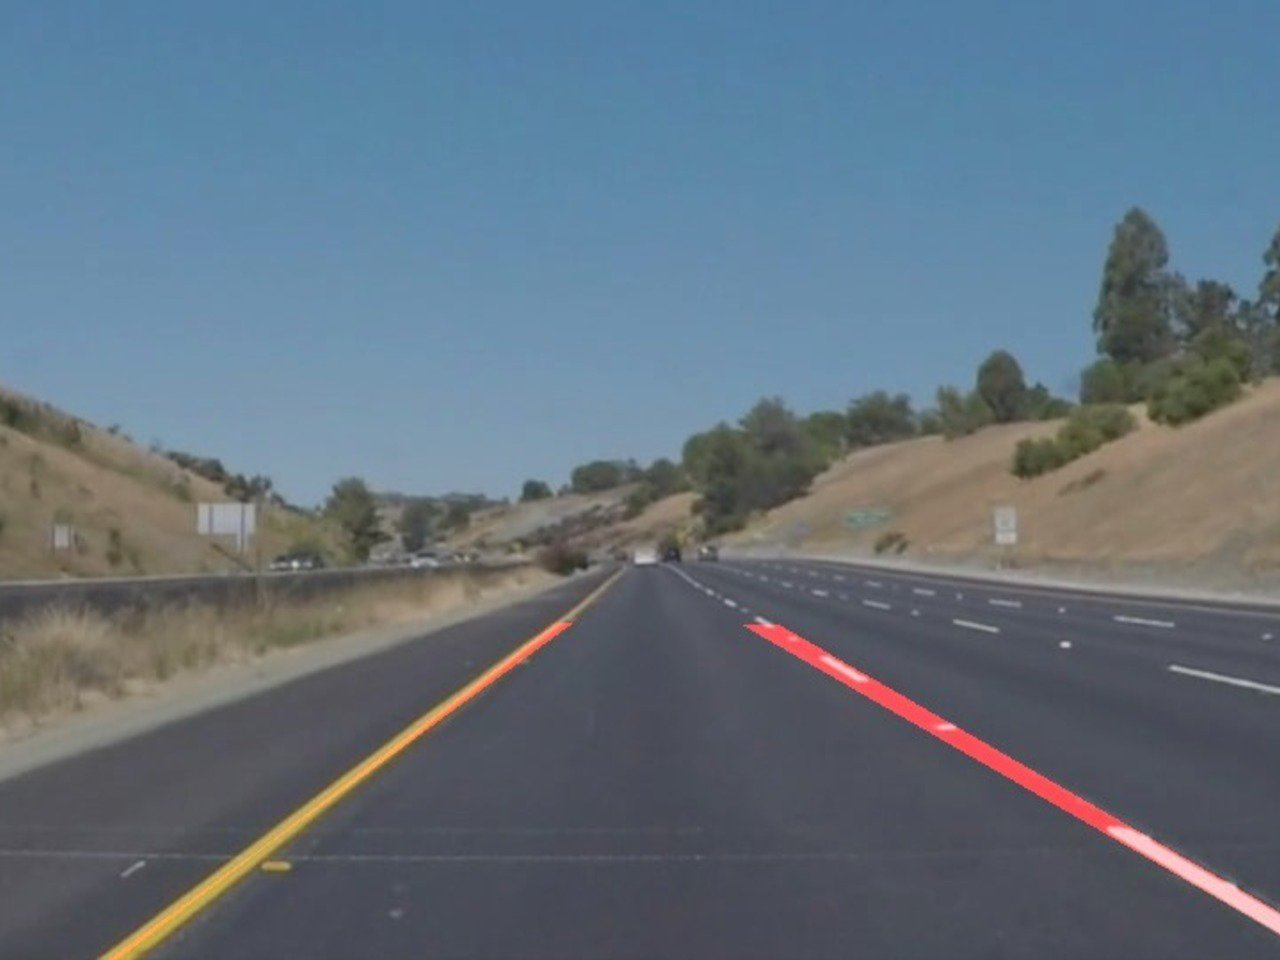 Road Lane detection